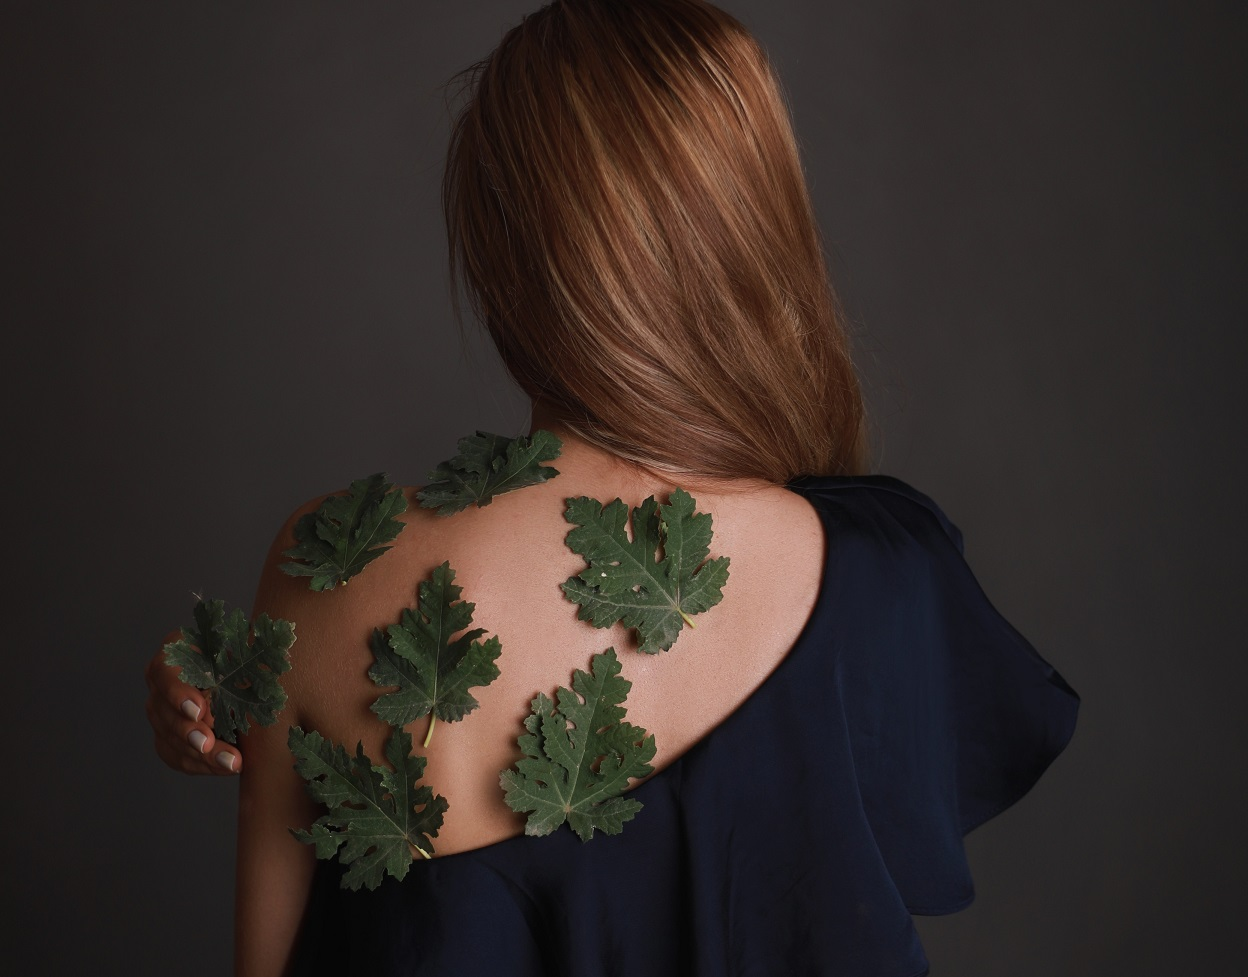 girl with leaves on her back facing away from the camera